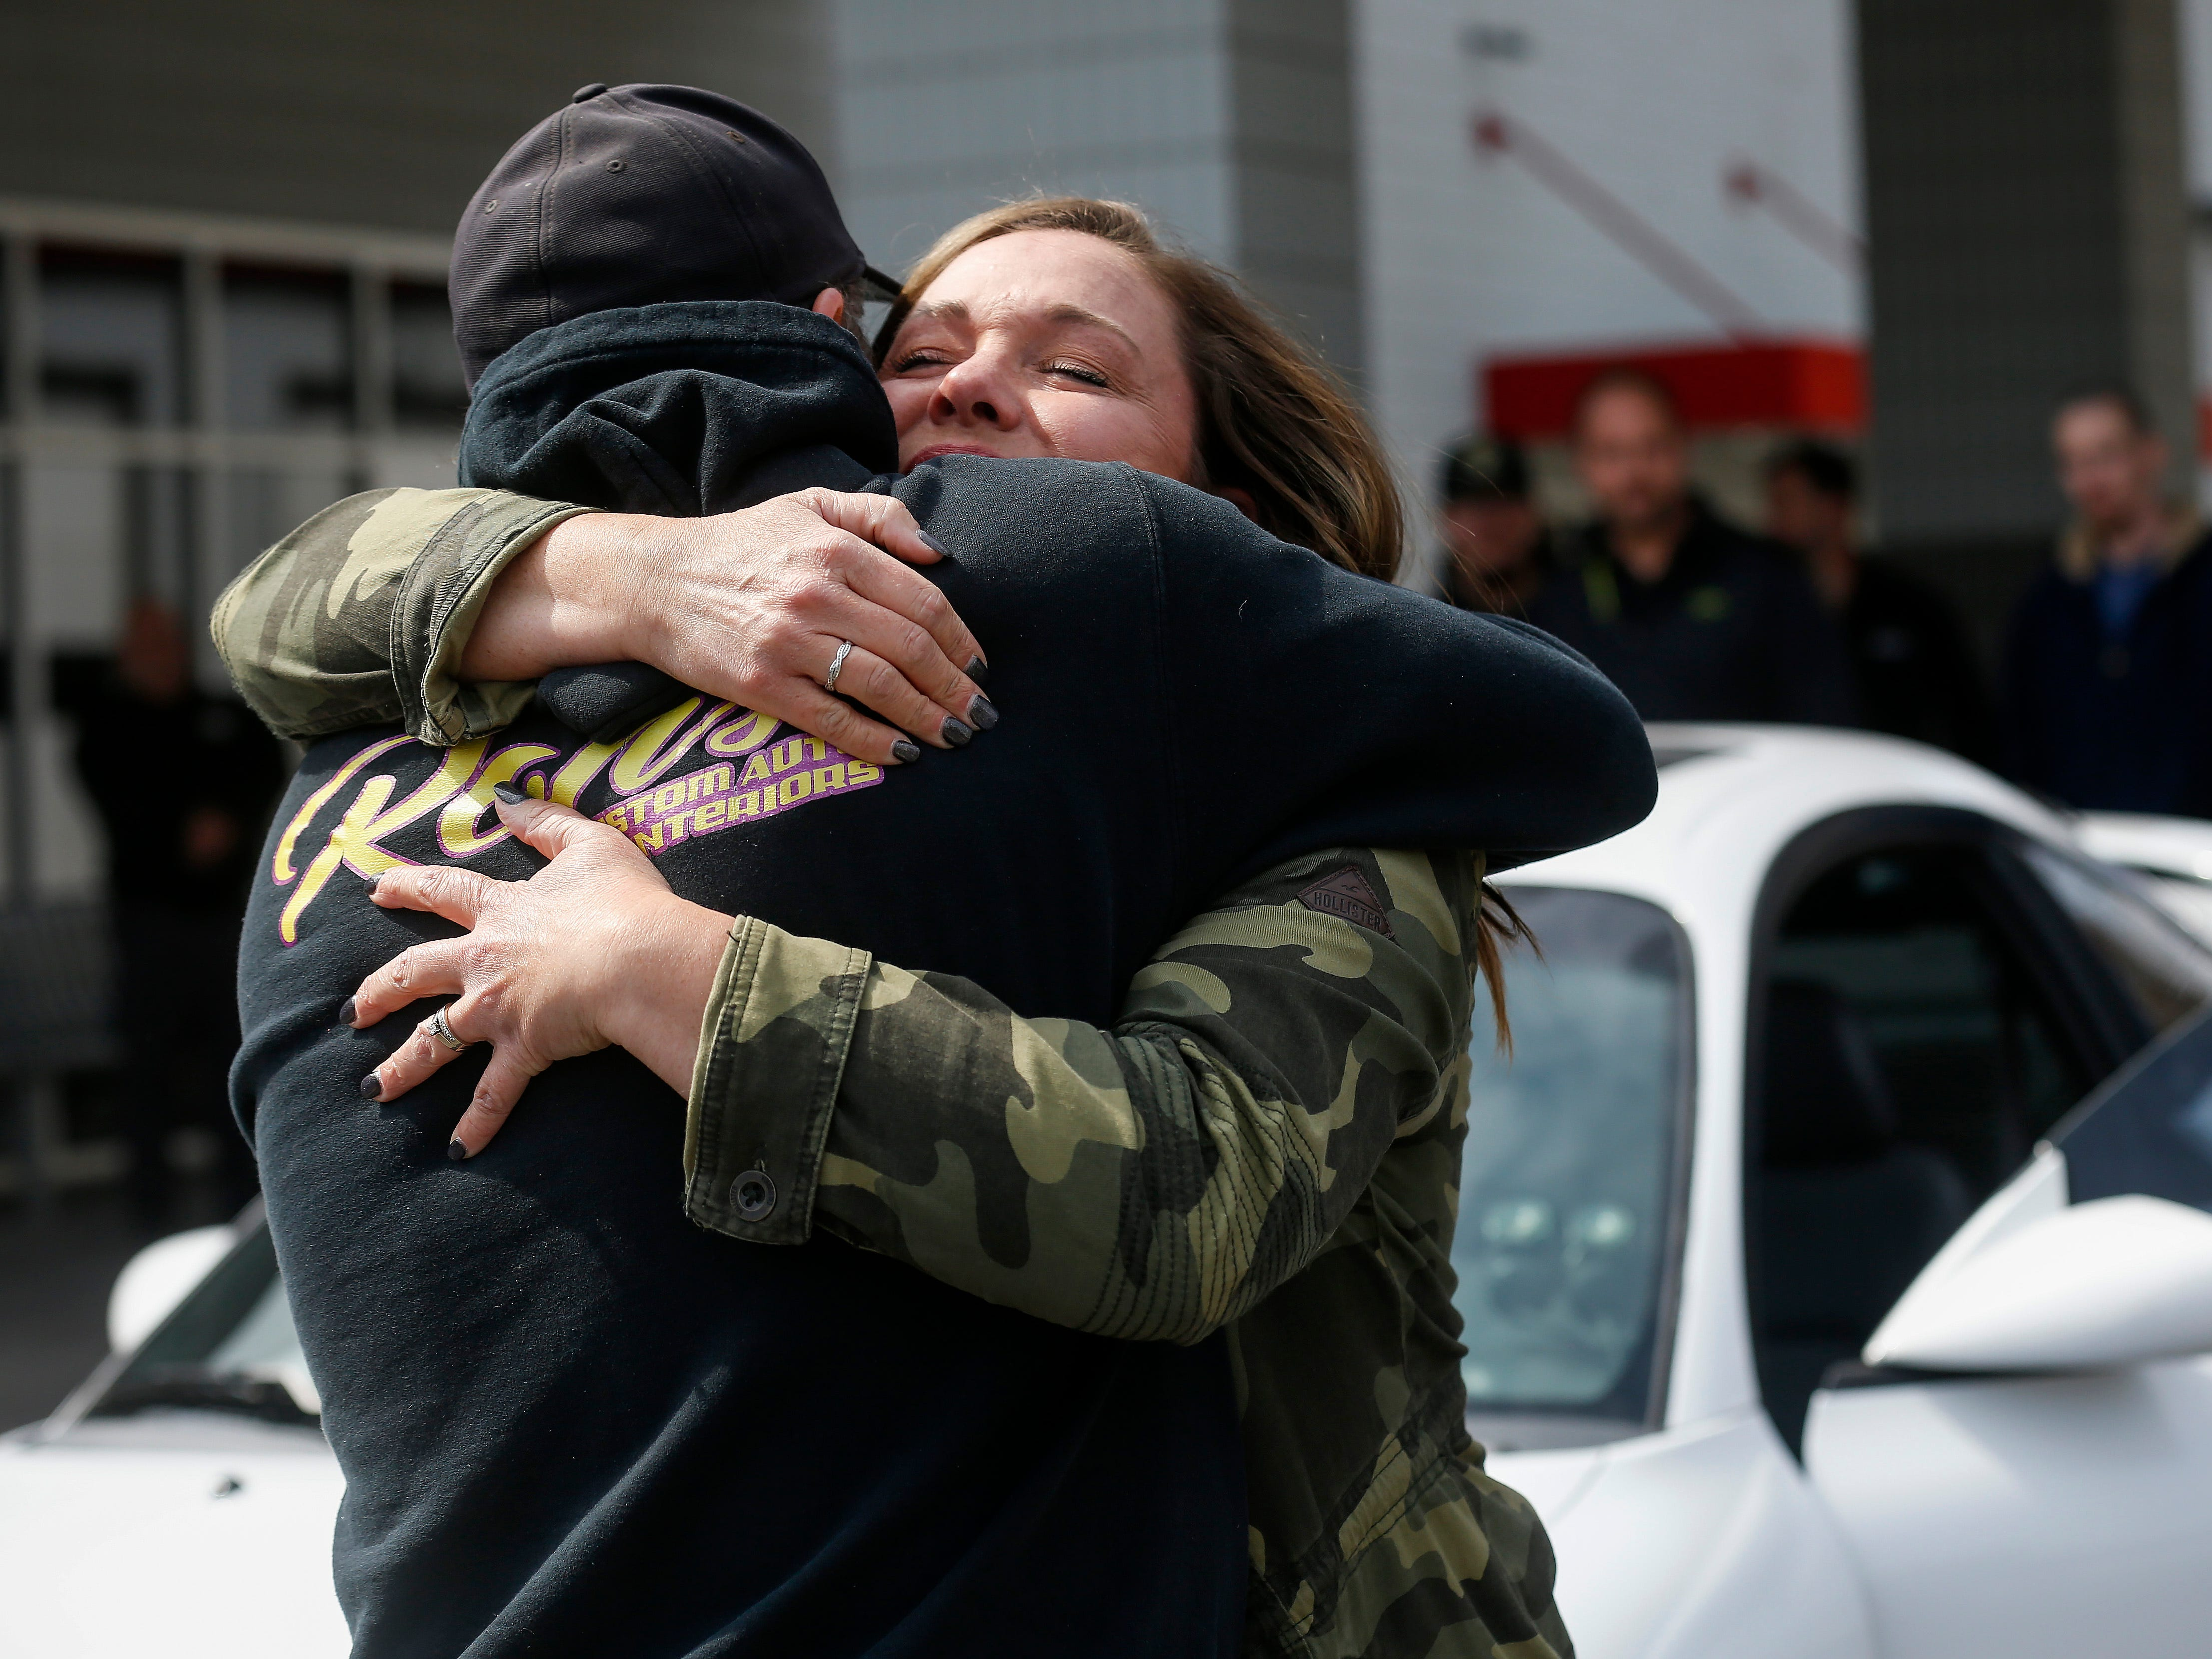 Kim Roberts, widow of Greene County Deputy Aaron Roberts, hugs Ron Stafford, owner of Ron's Custom Auto Interiors, who was one of the community members who helped restore the 1995 Mitsubishi Eclipse that her husband was restoring.